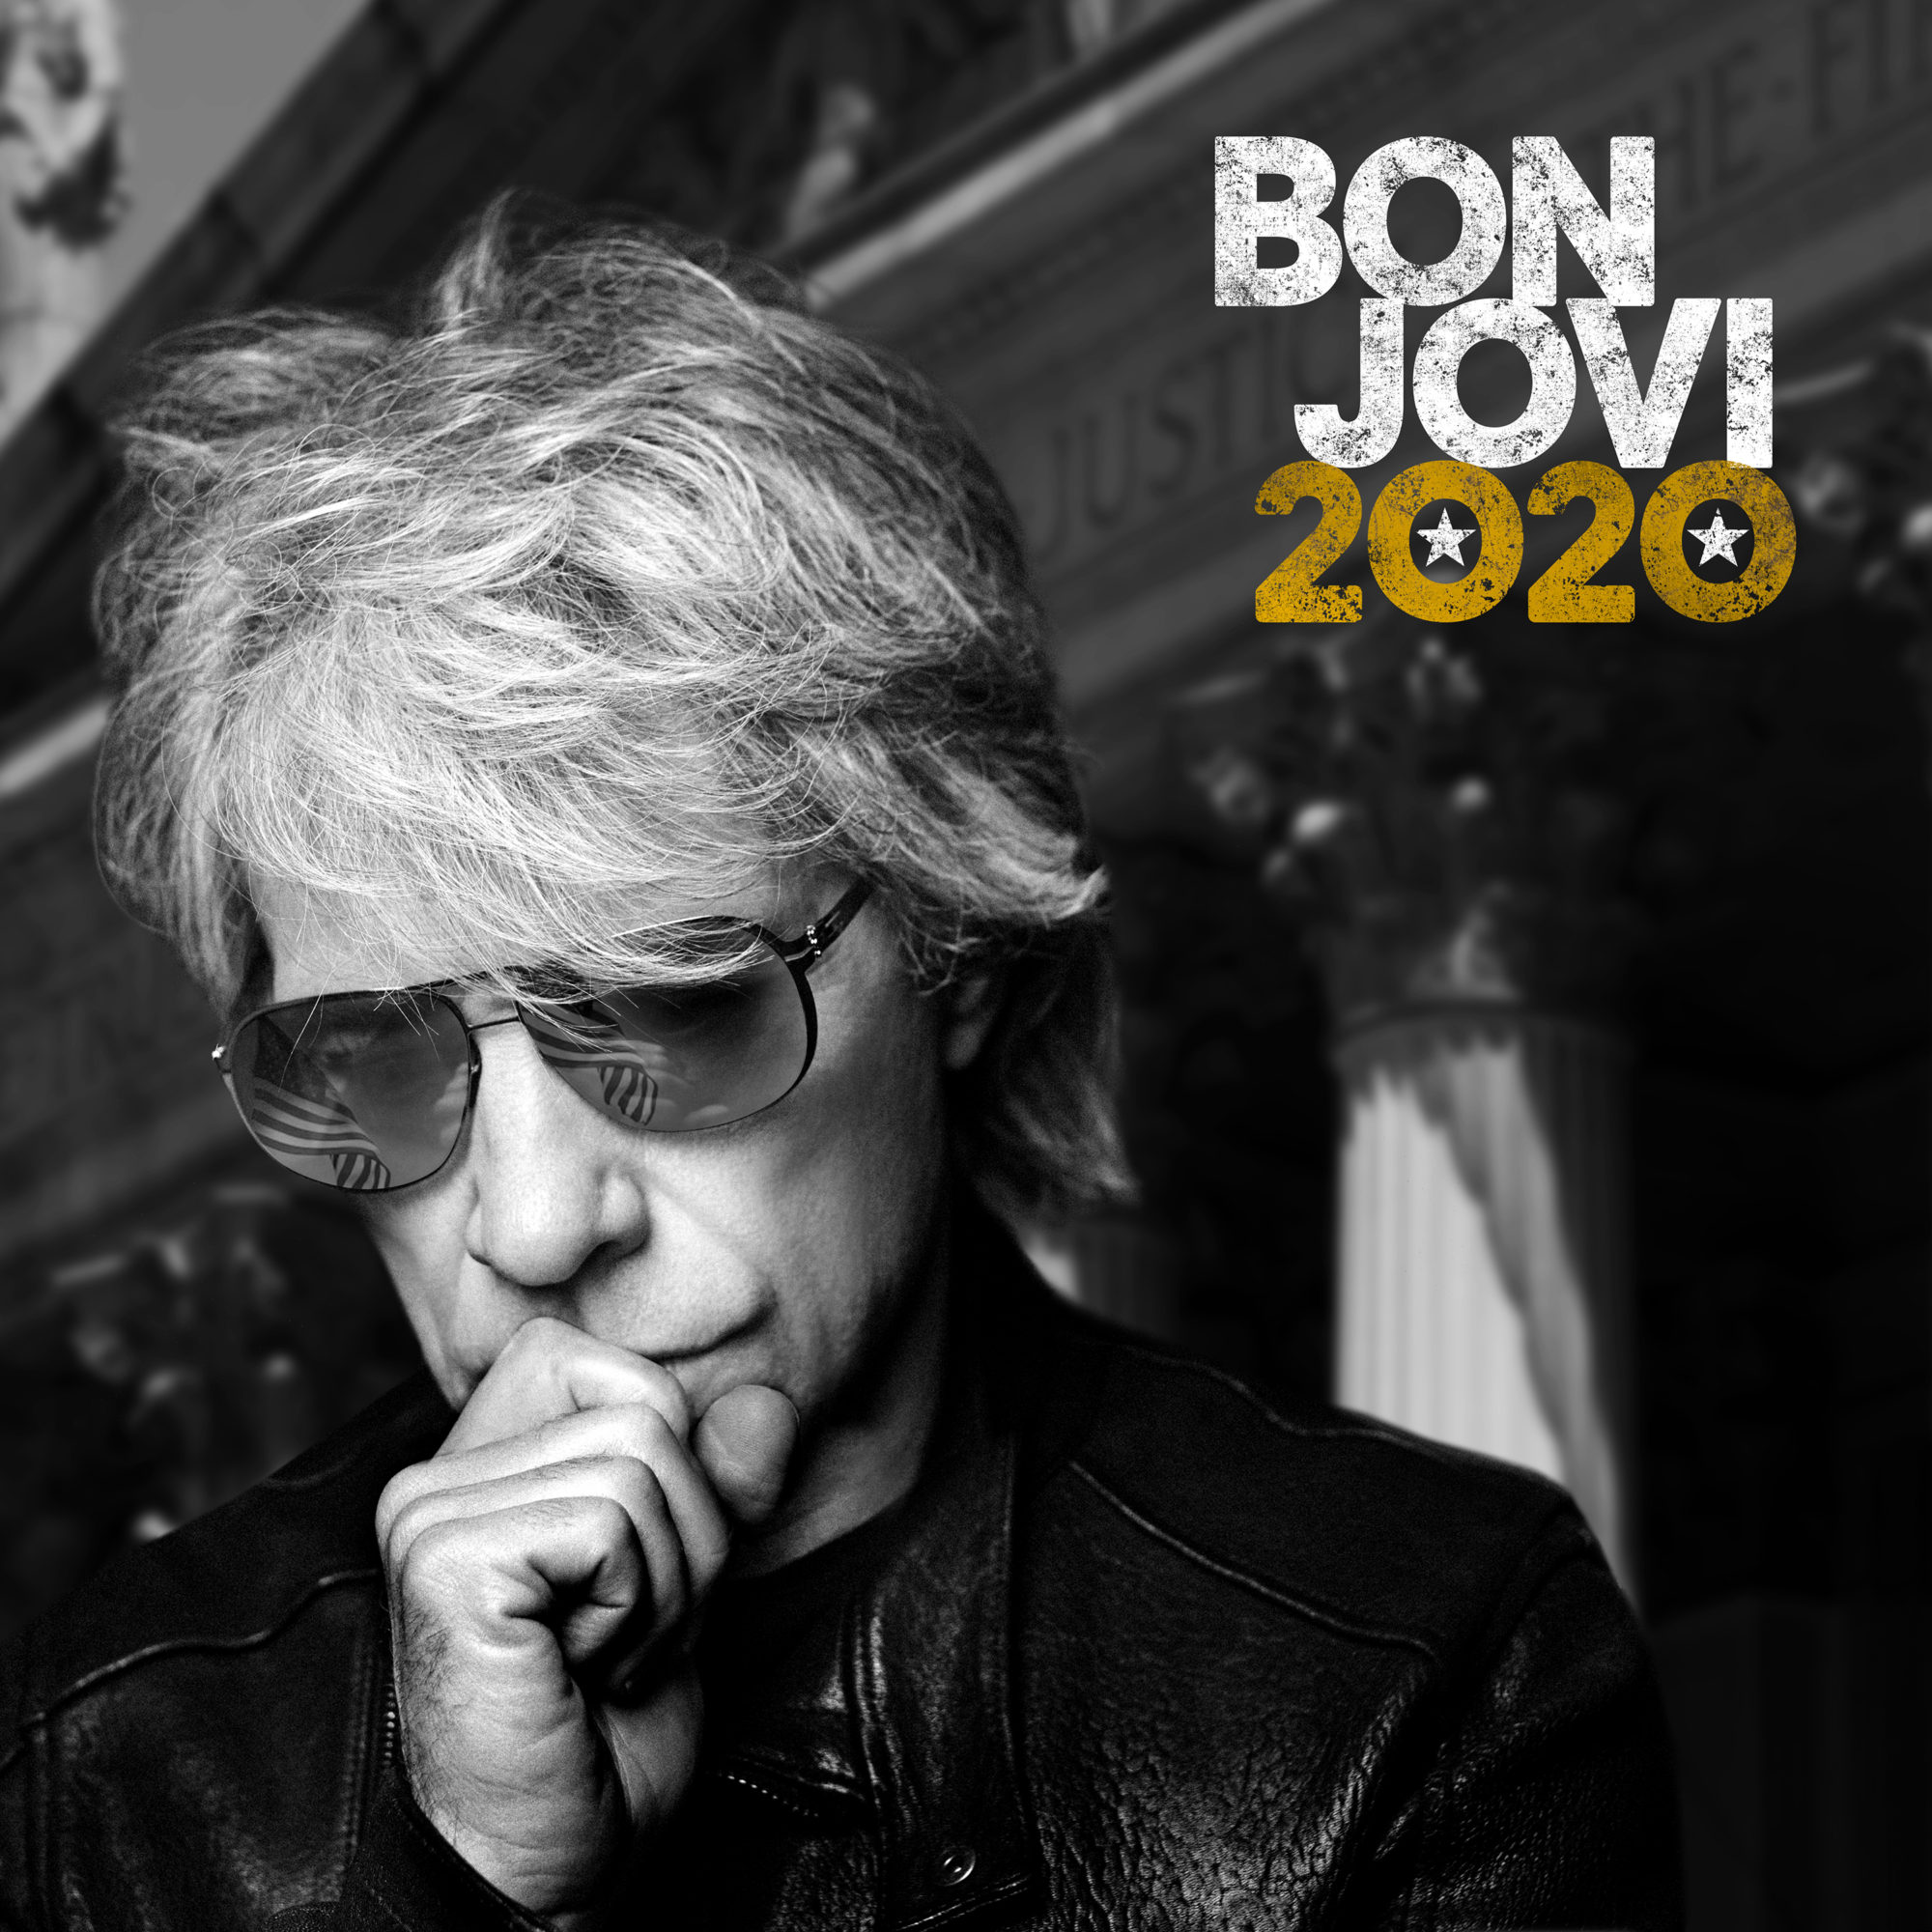 Bon Jovi Releases New Single 'Limitless' From Forthcoming Album Bon Jovi 2020